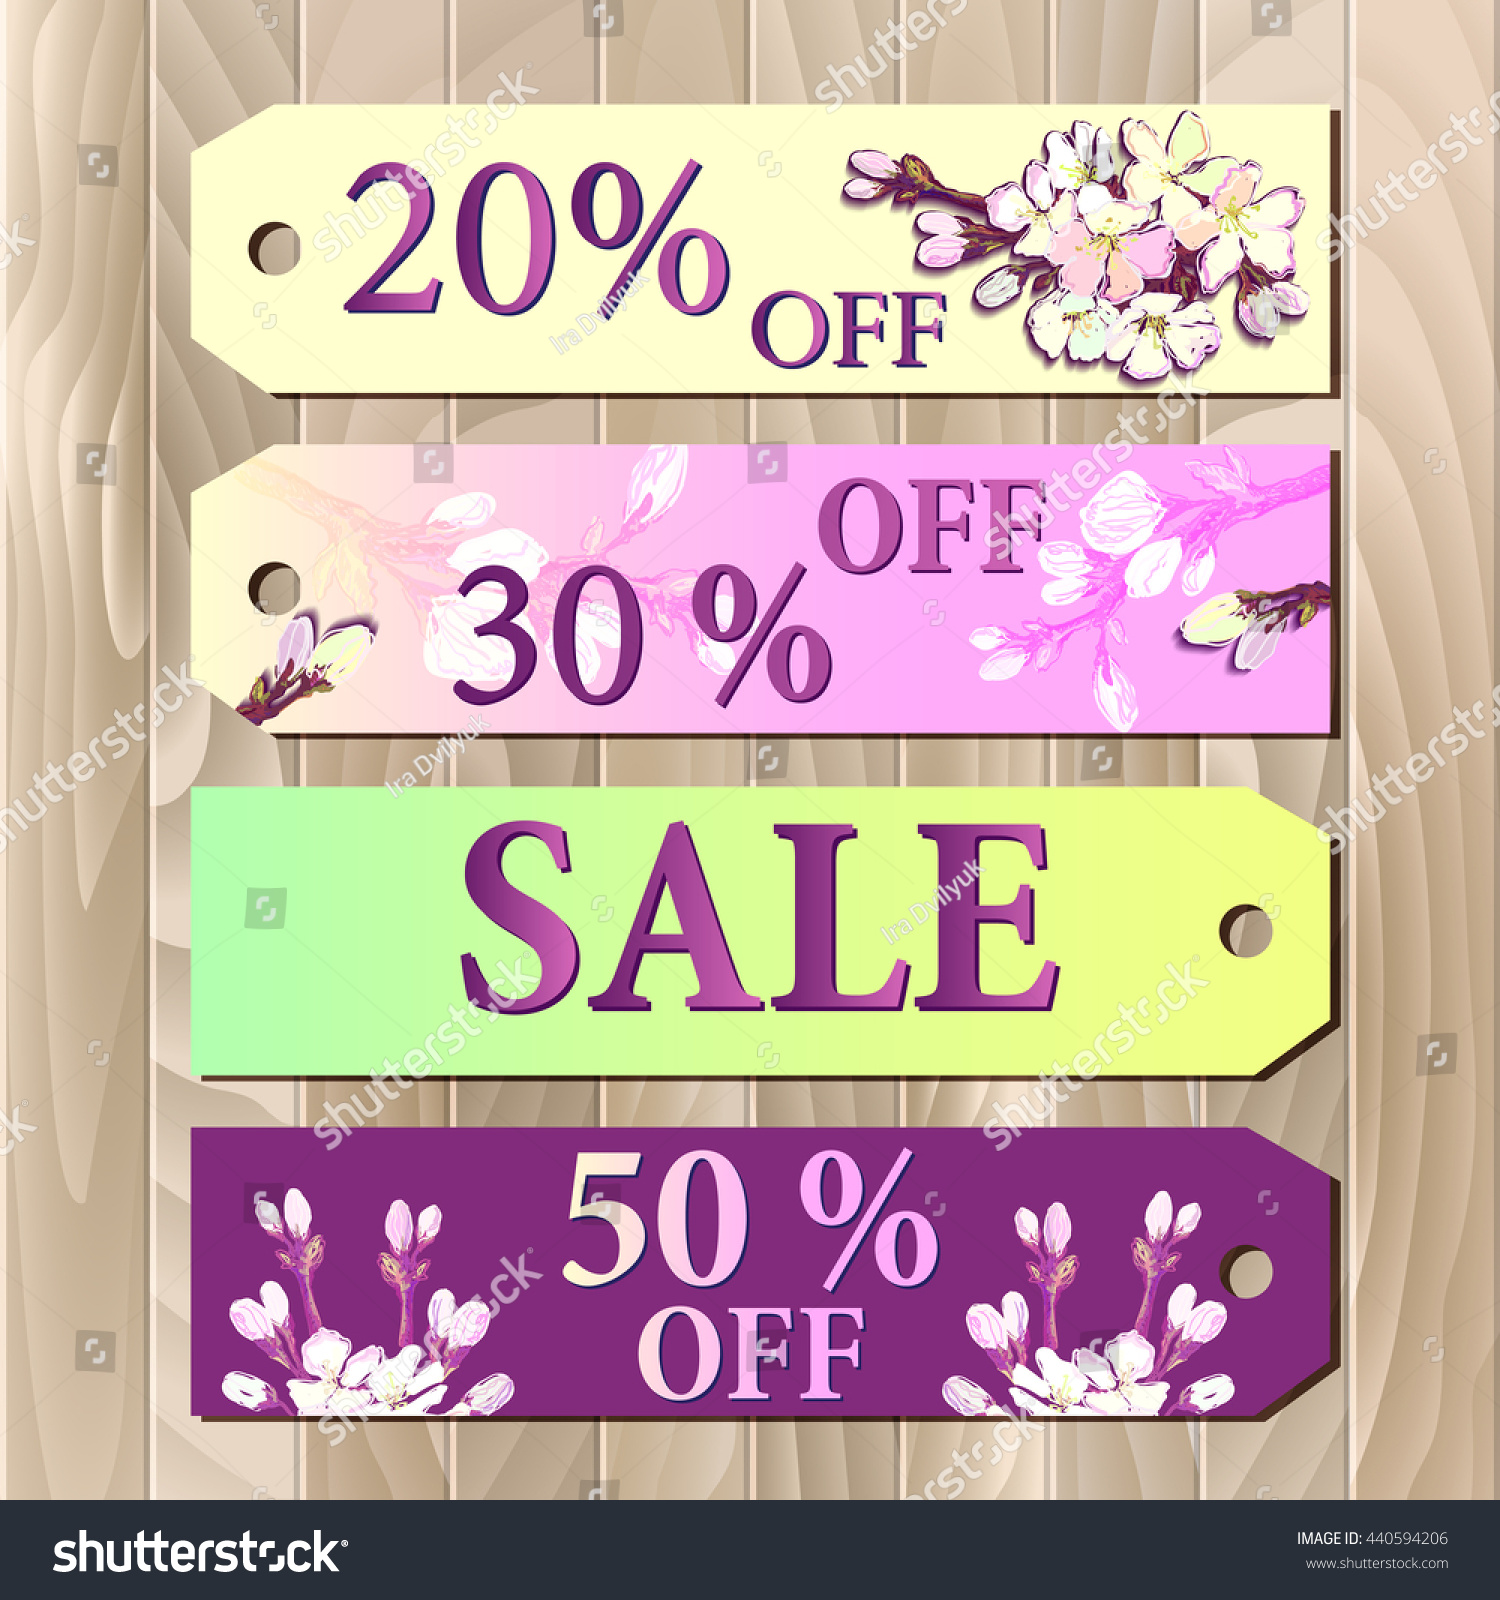 Big Sale Gift Certificate Coupon Template Stock Illustration ...